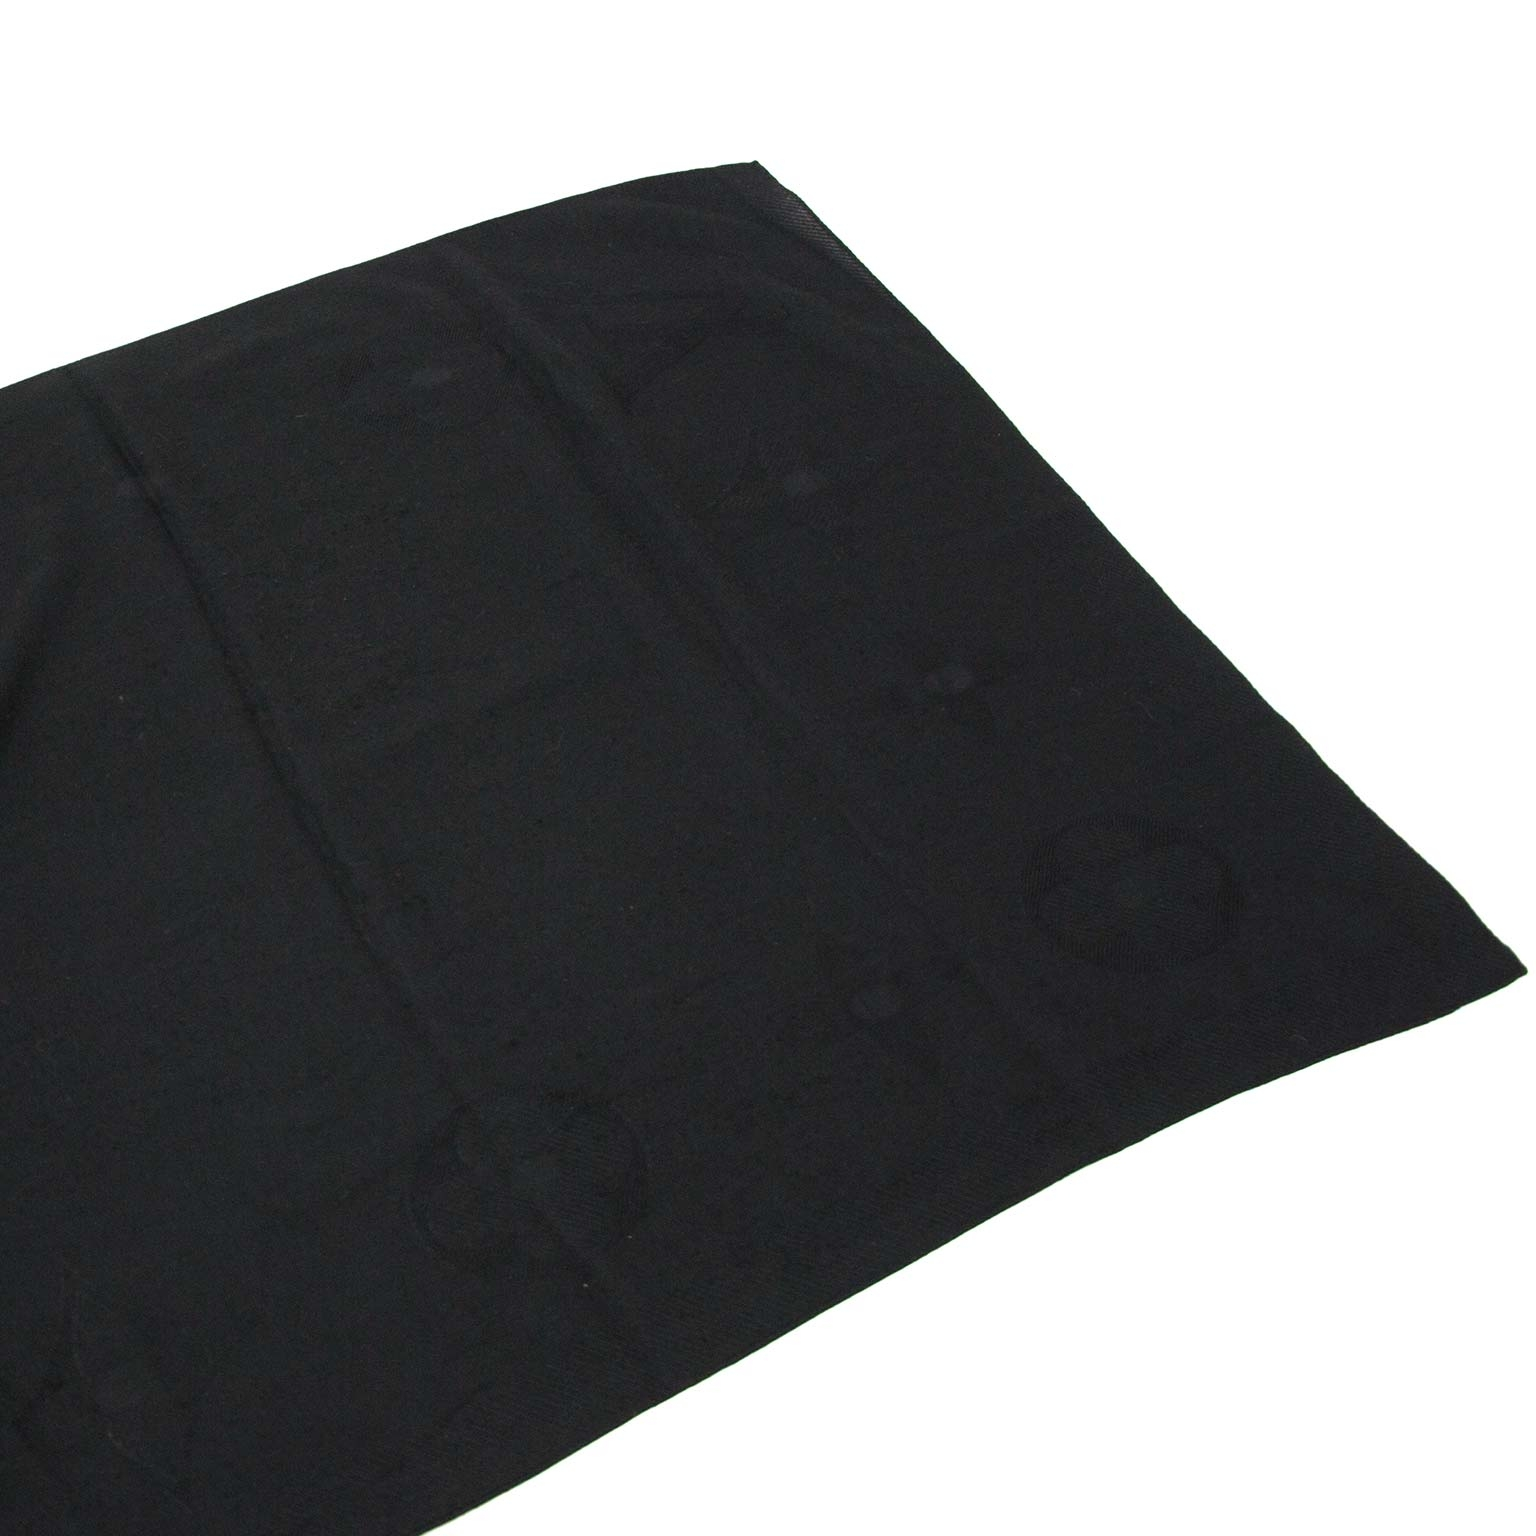 secondhand Louis Vuitton Black Cashmere Scarf for sale at labellov Antwerp